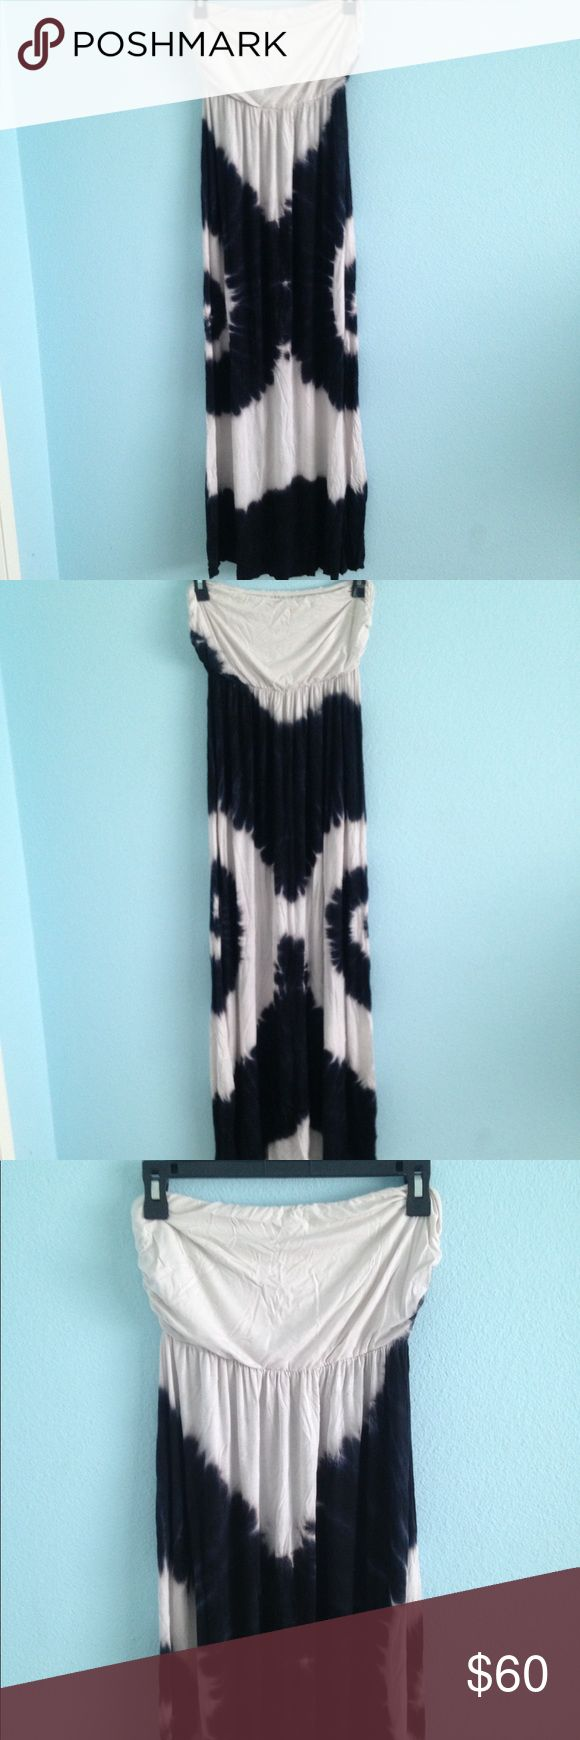 Black and white maxi tie dye dress I perfect condition. No tags, never worn! Super soft stretchy material. Not see through. Elastic under the boob area Urban Outfitters Dresses Maxi